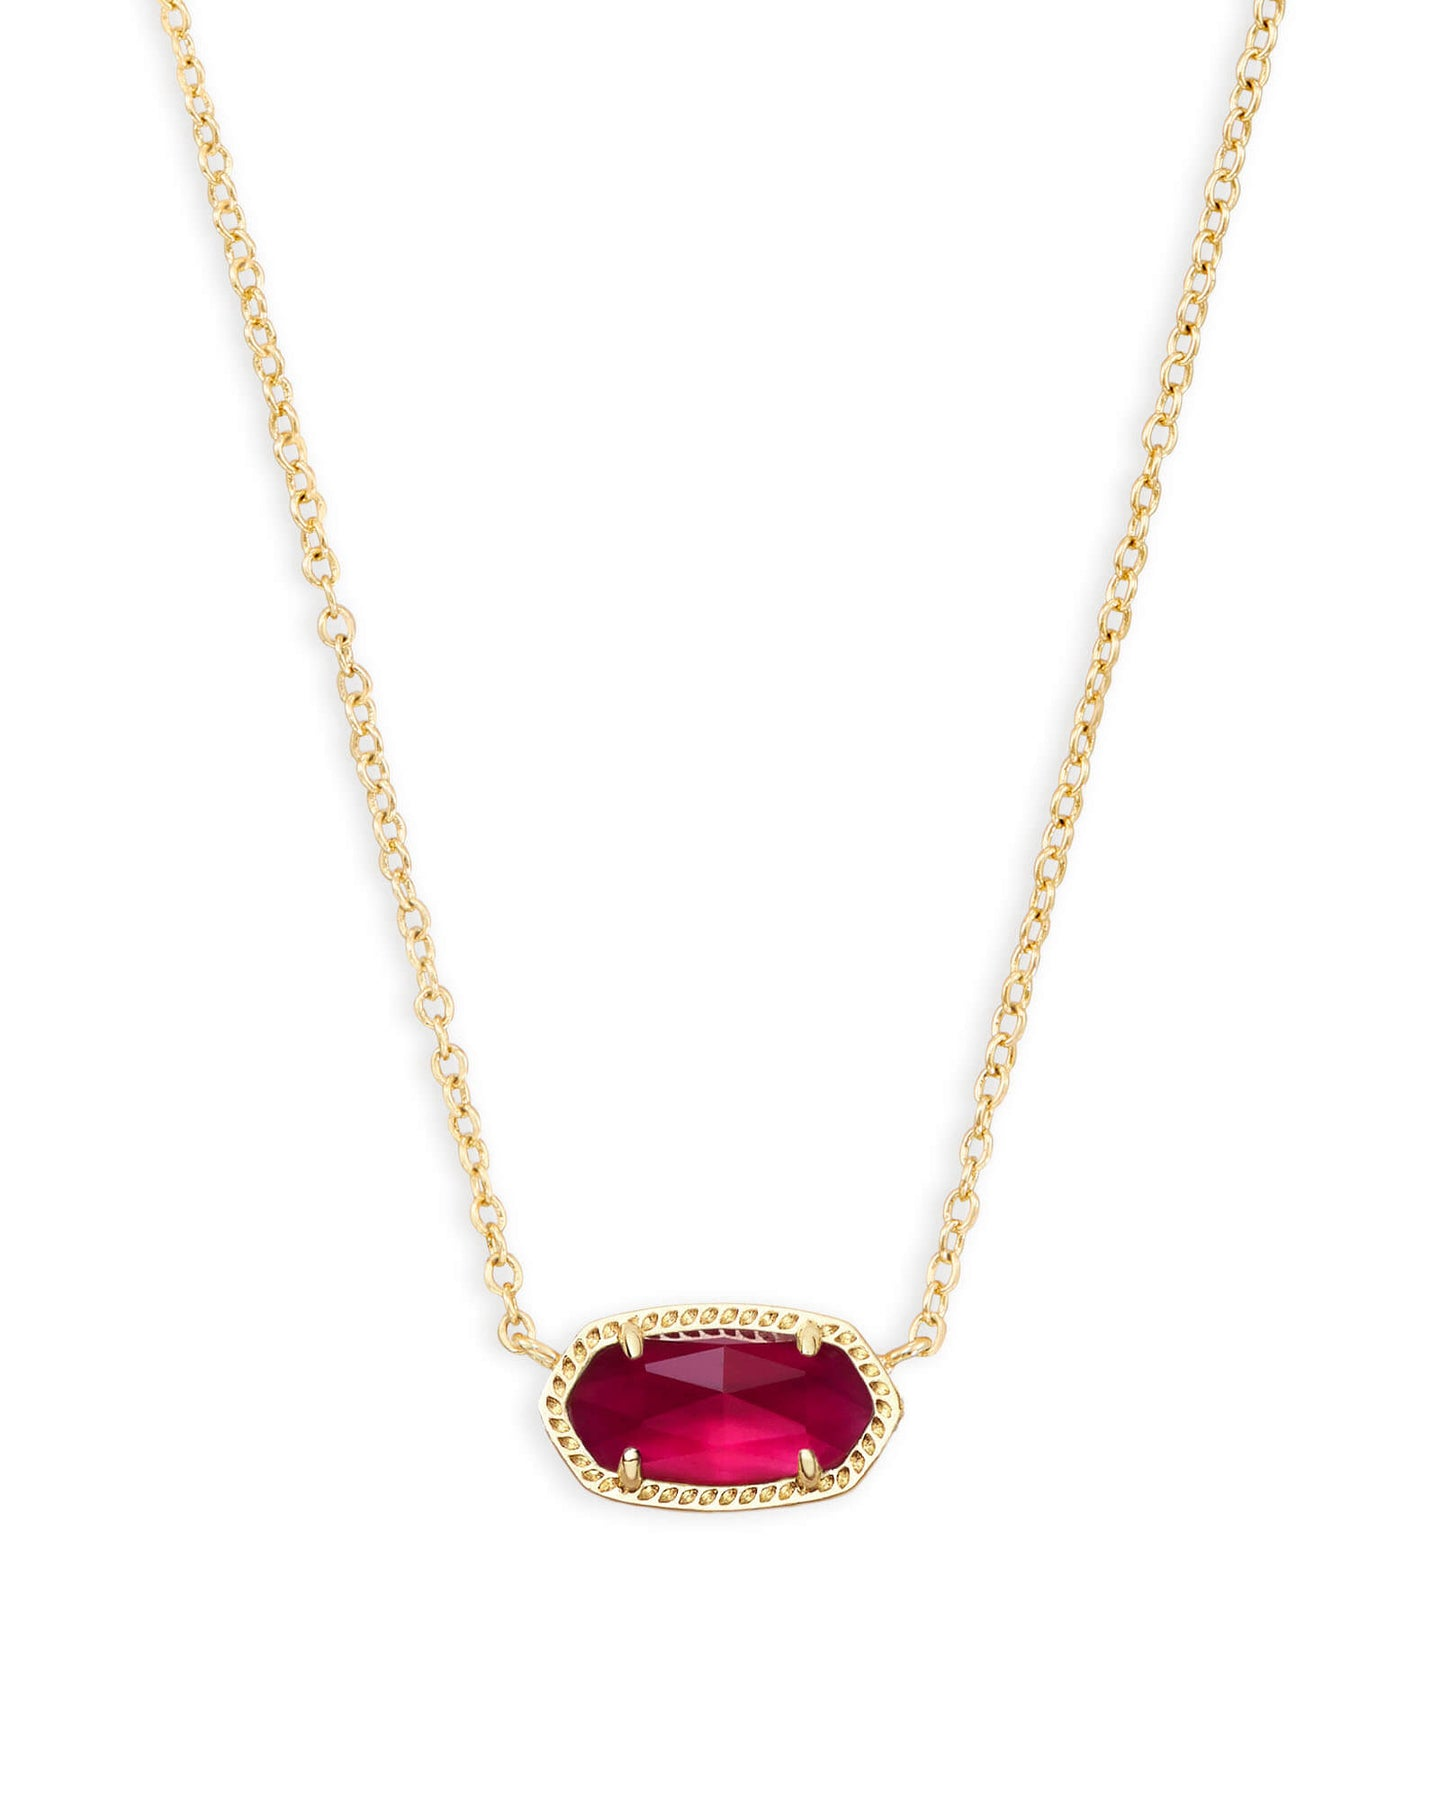 Kendra Scott Elisa Necklace - Gold Berry Illusion